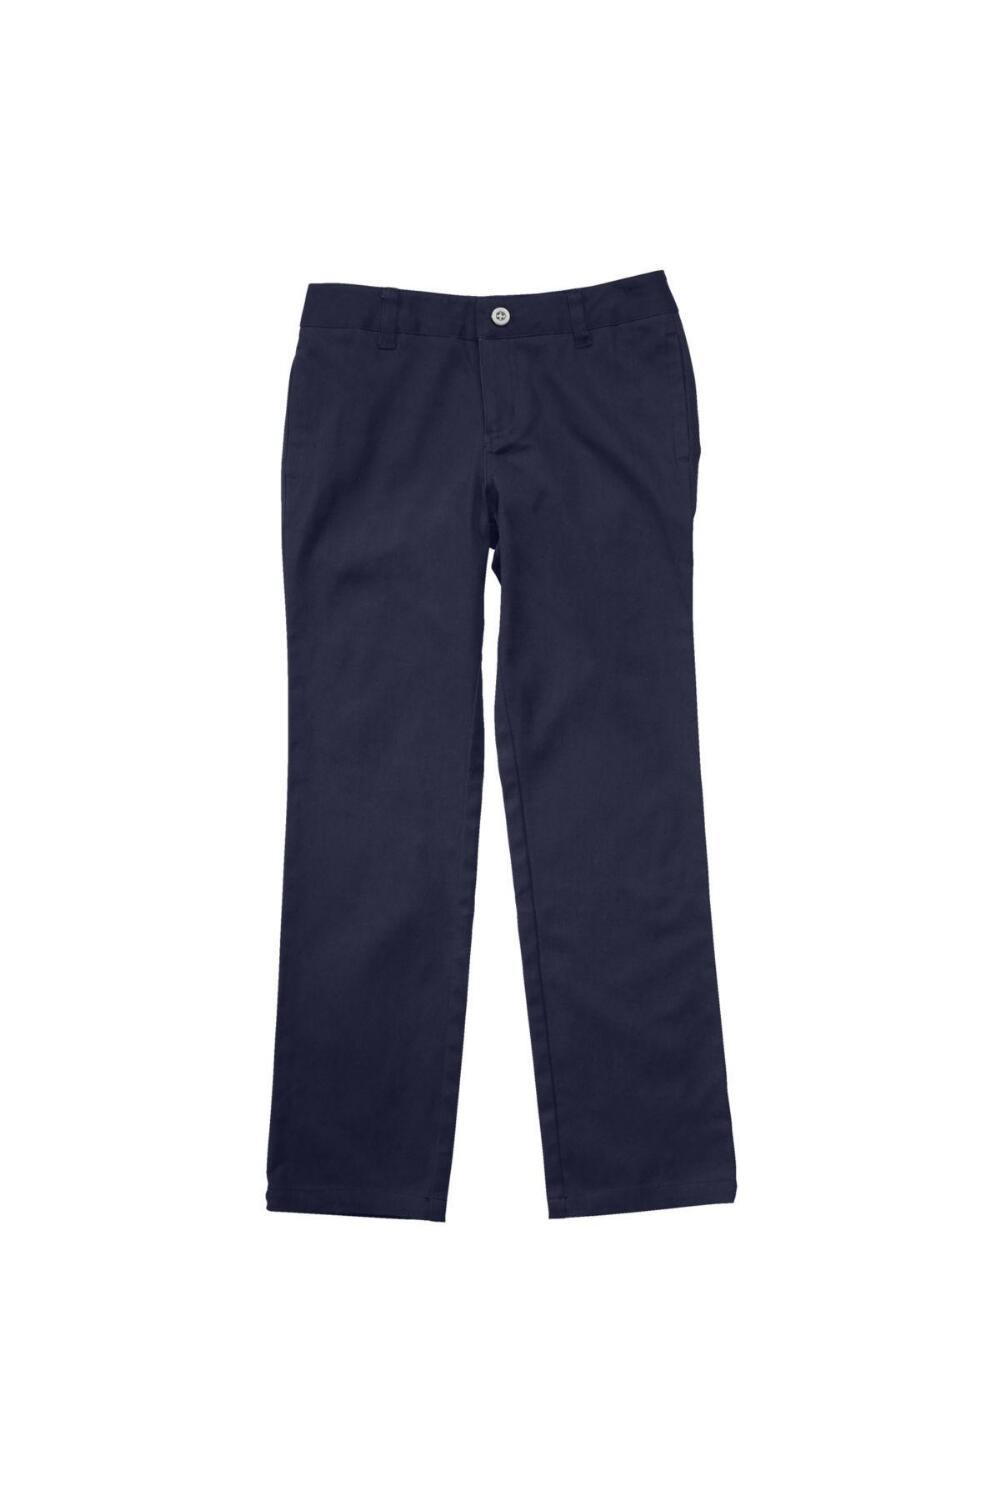 French Toast Girl's Straight Leg Twill Pant (Pant Color: Navy - YLS, Pant Size: Size 4)